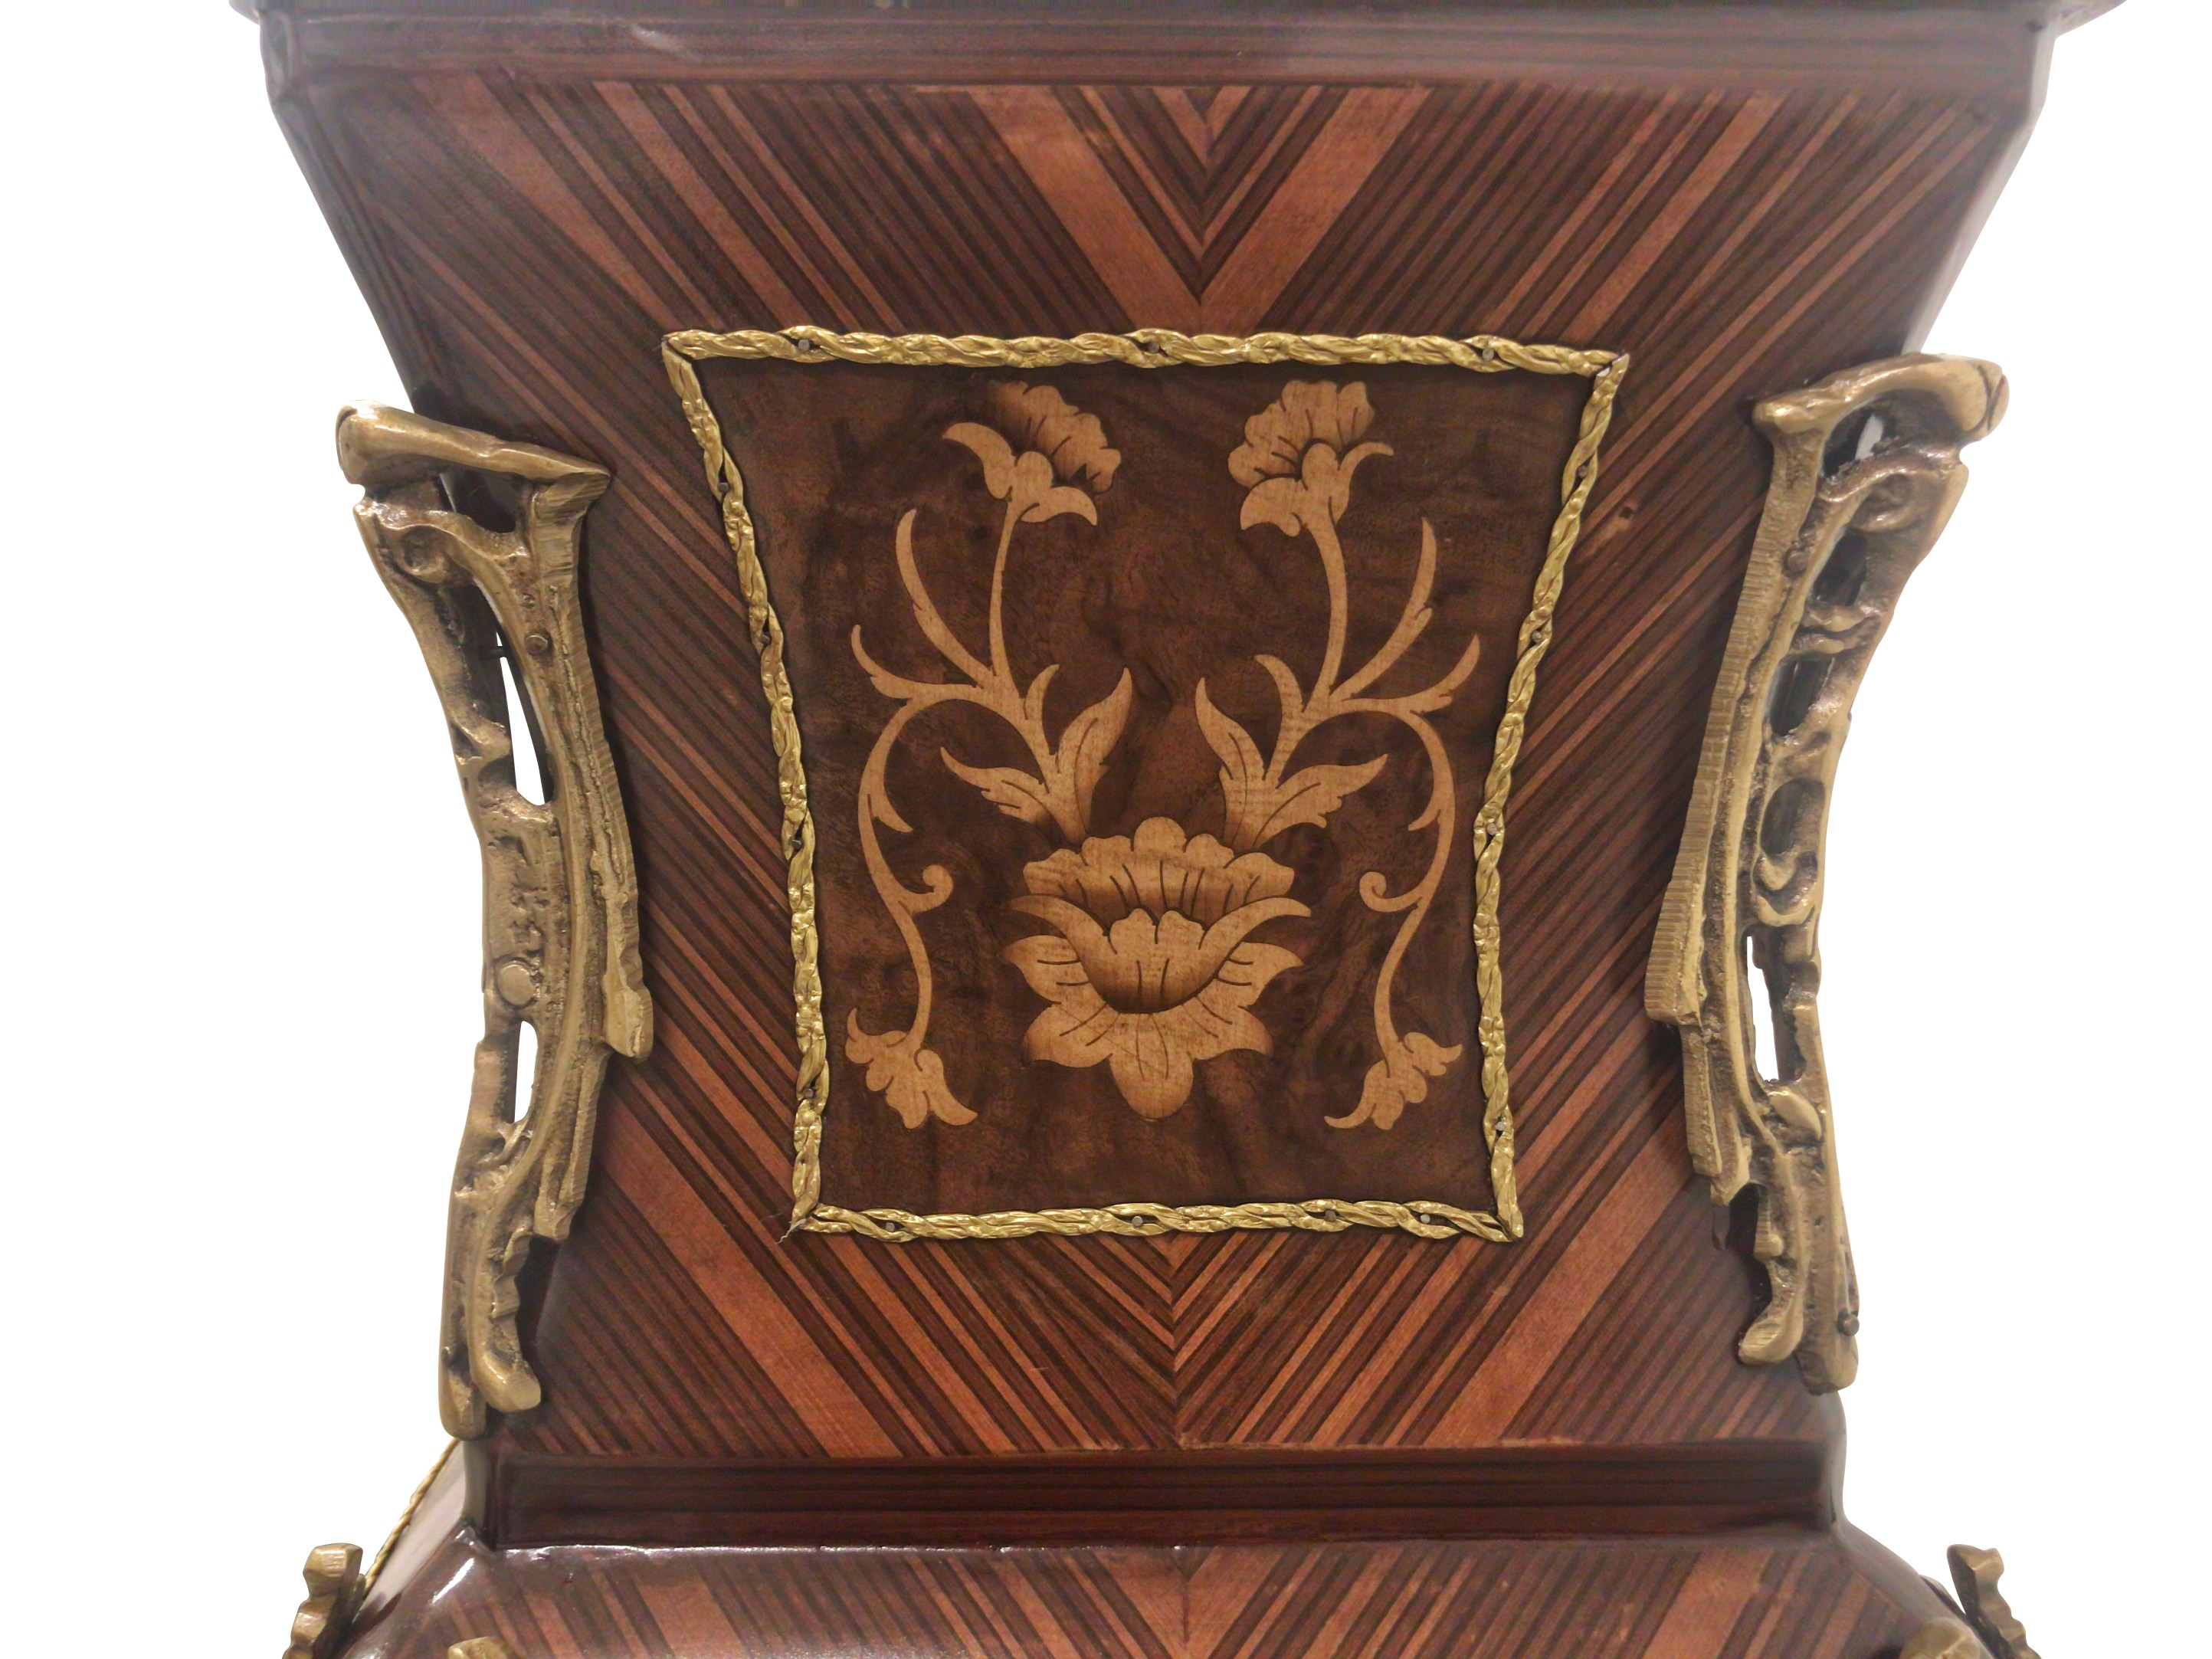 Hélénie d'automne, French Style , Marquetry Art , Solid Bronze Trims, Marble Top ,Wood Pedestal (Set of 2)